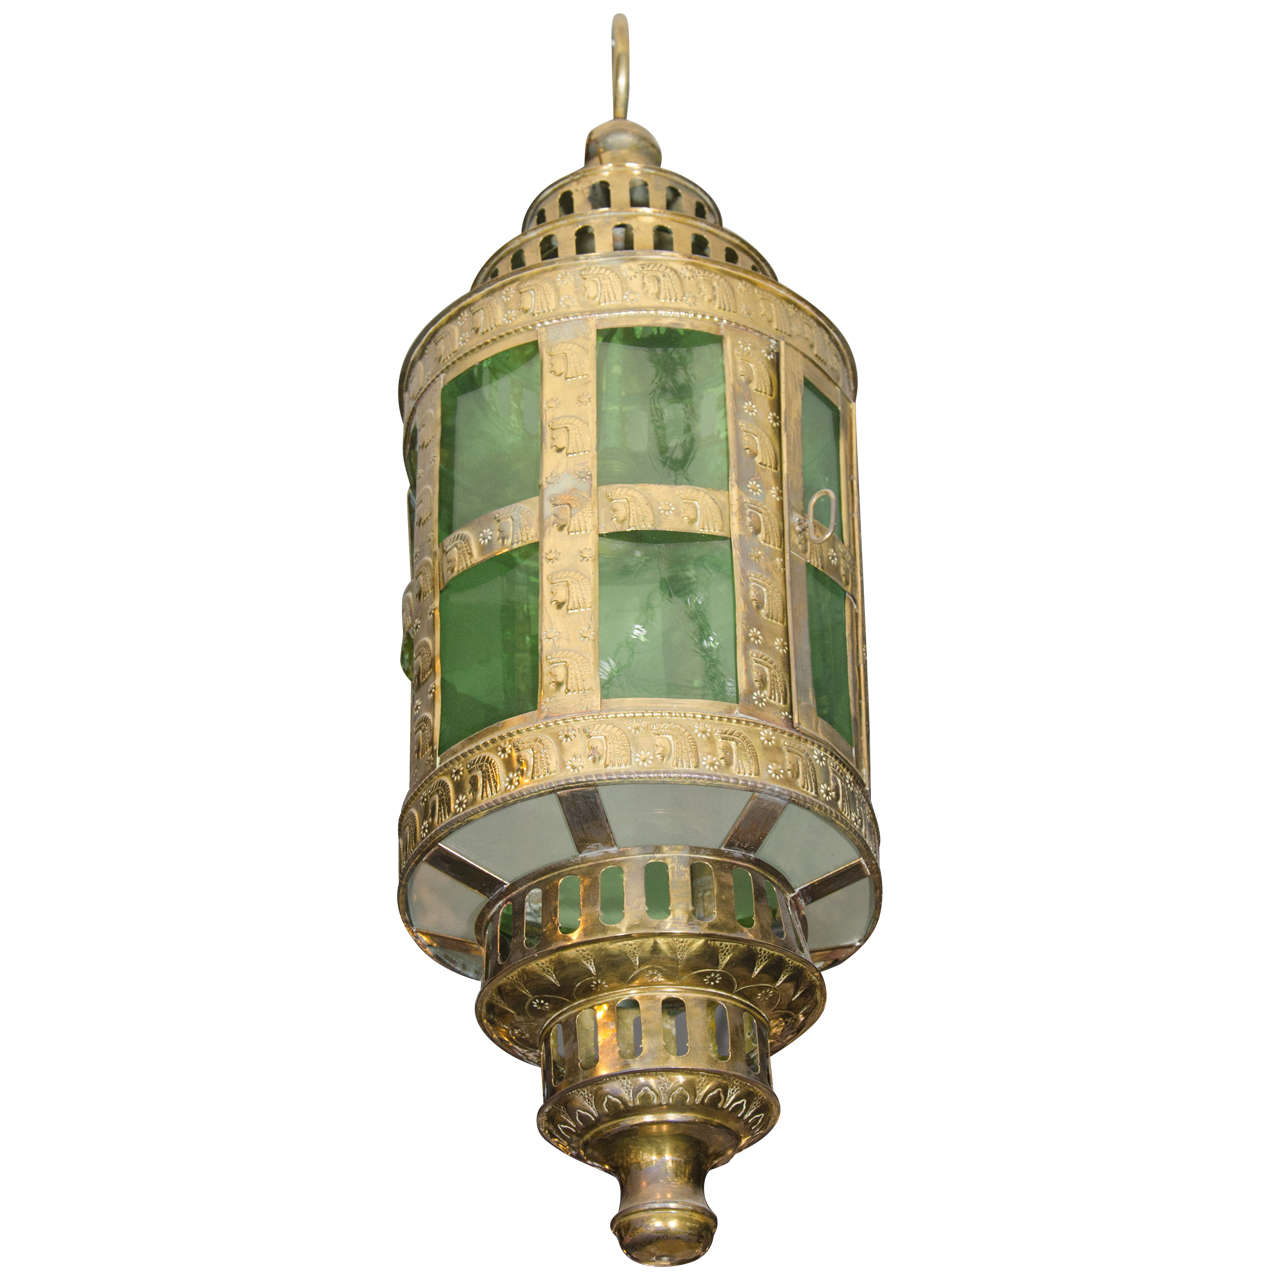 Antique Ship's Lantern For Sale at 1stdibs